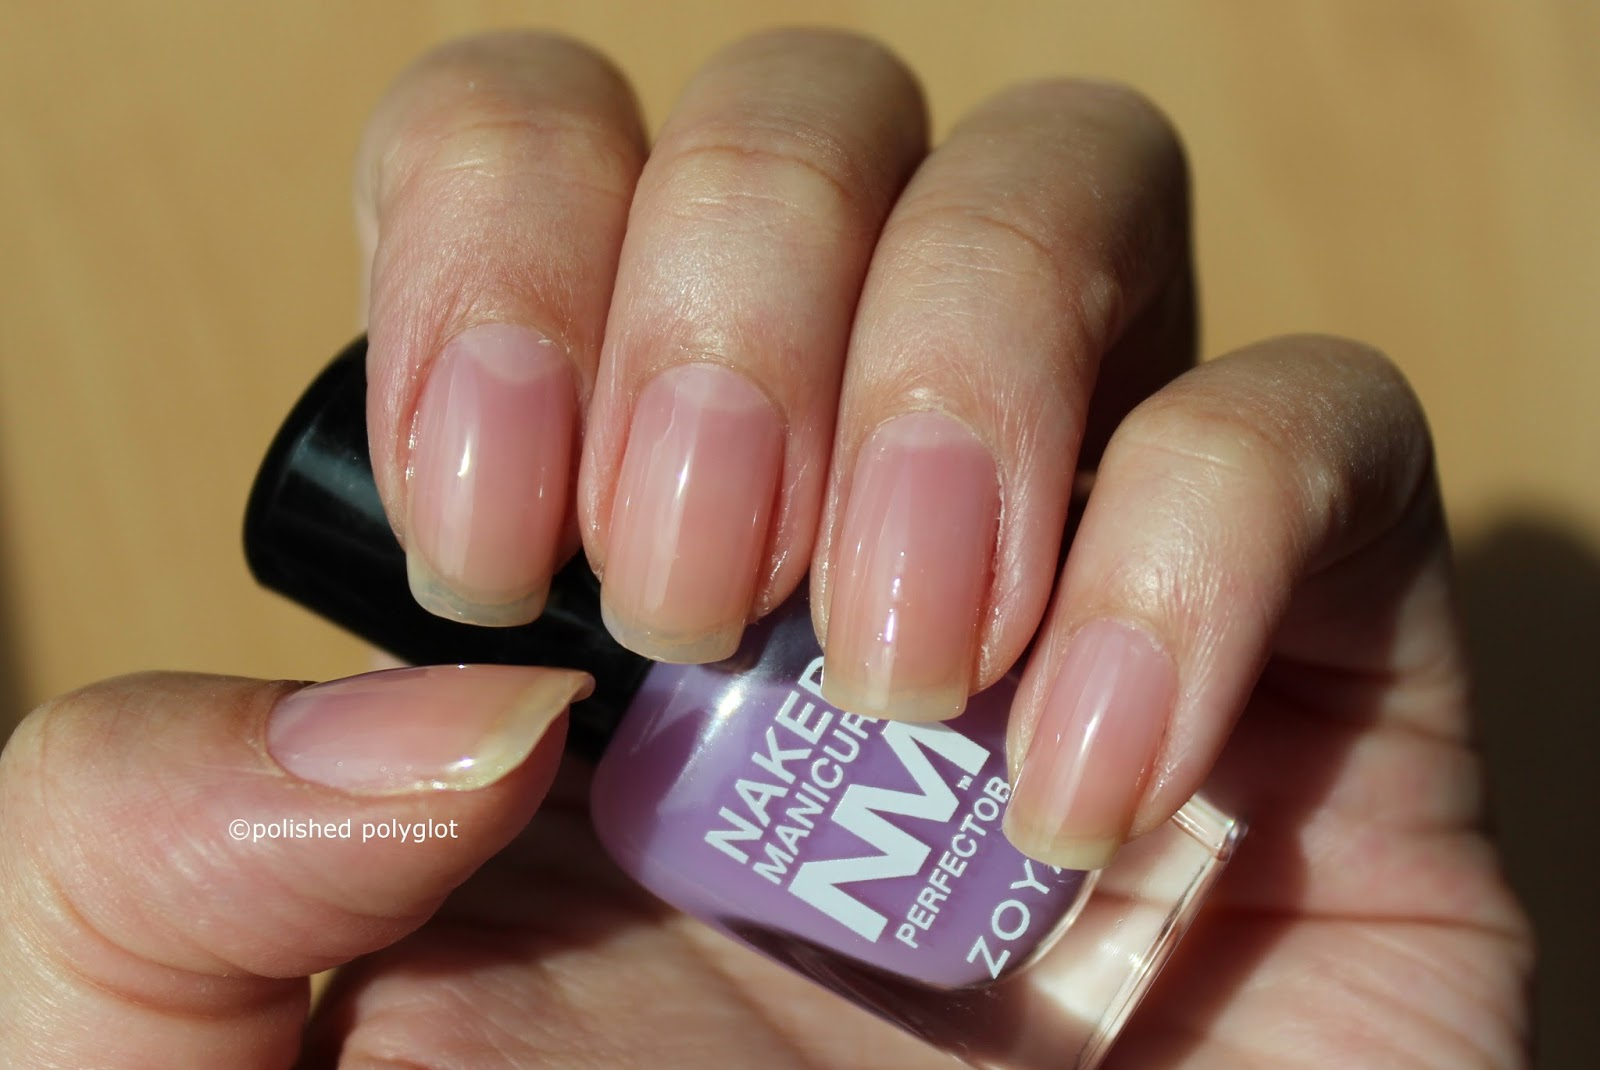 ehmkay nails: Zoya Naked Manicure Review and Wear Test